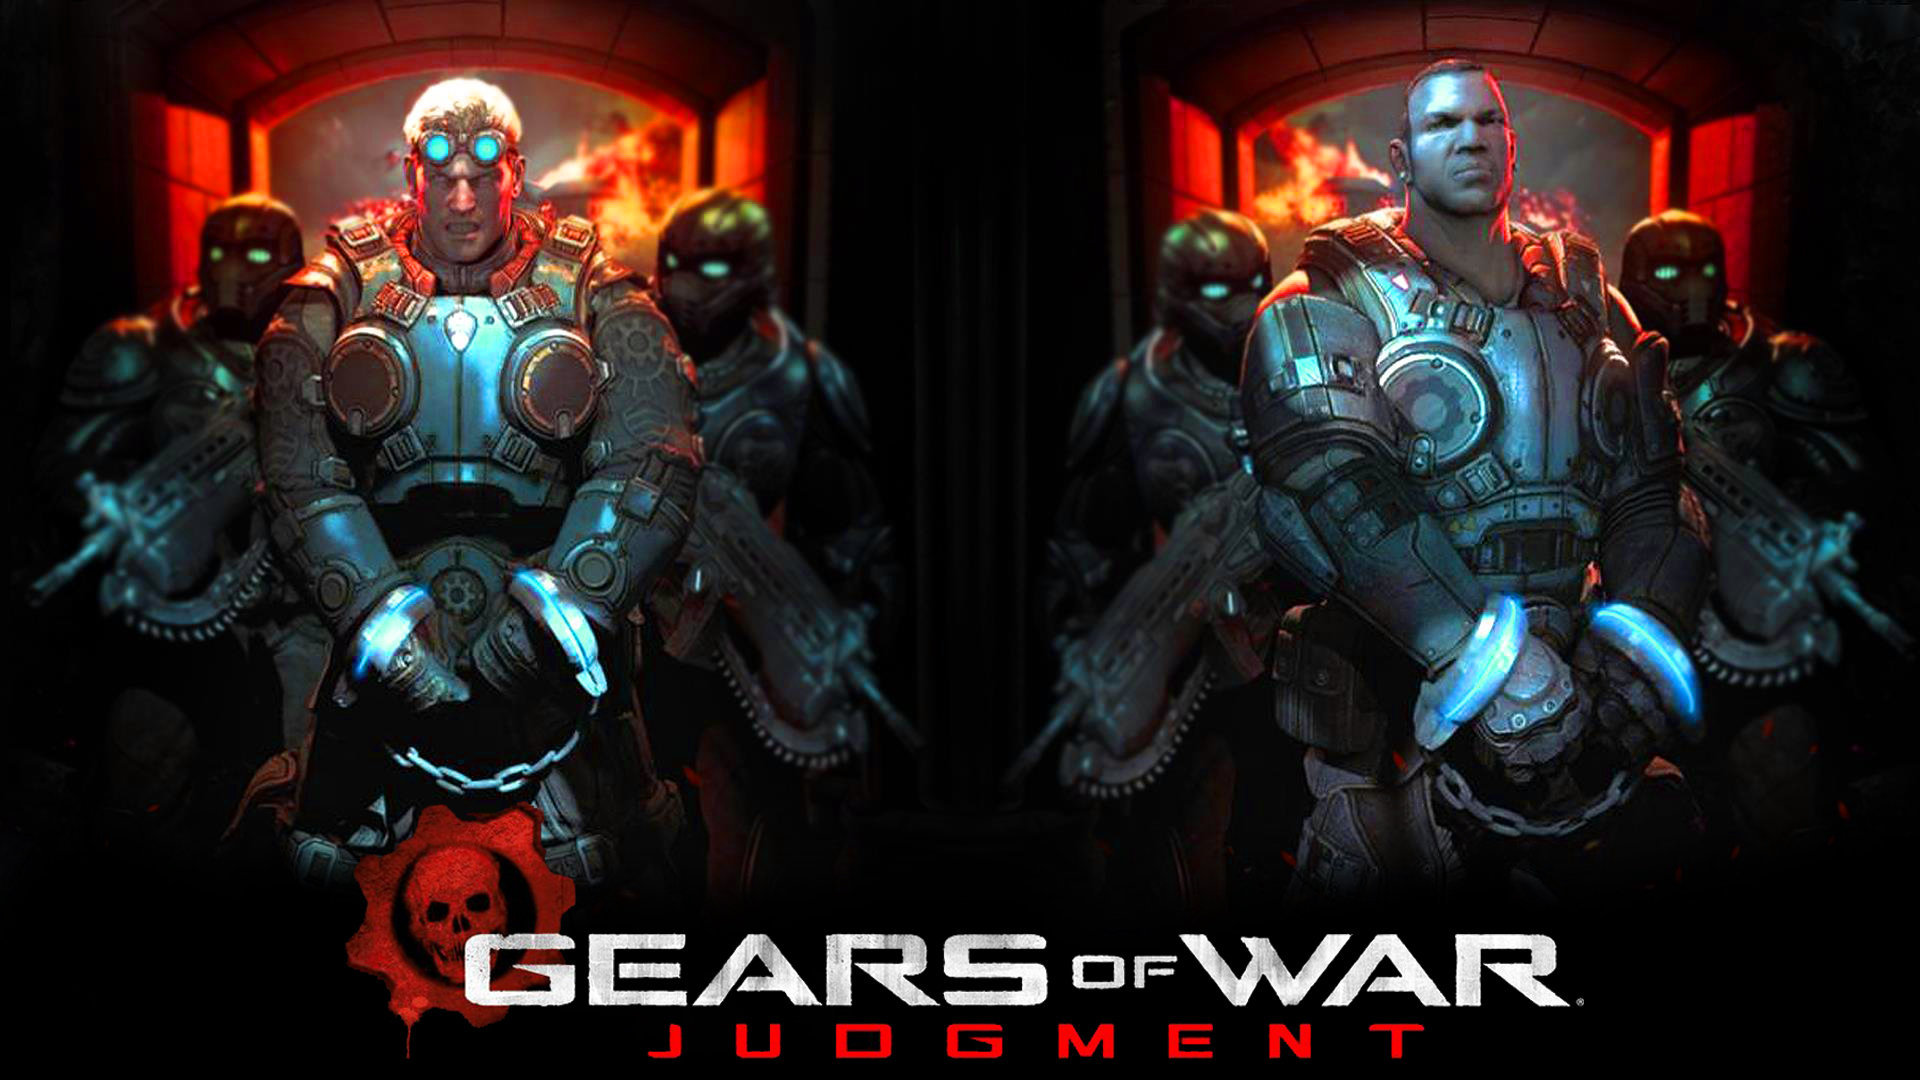 Free Download Gears Of War Judgment Wallpaper Hd 19201080 21974 Hd